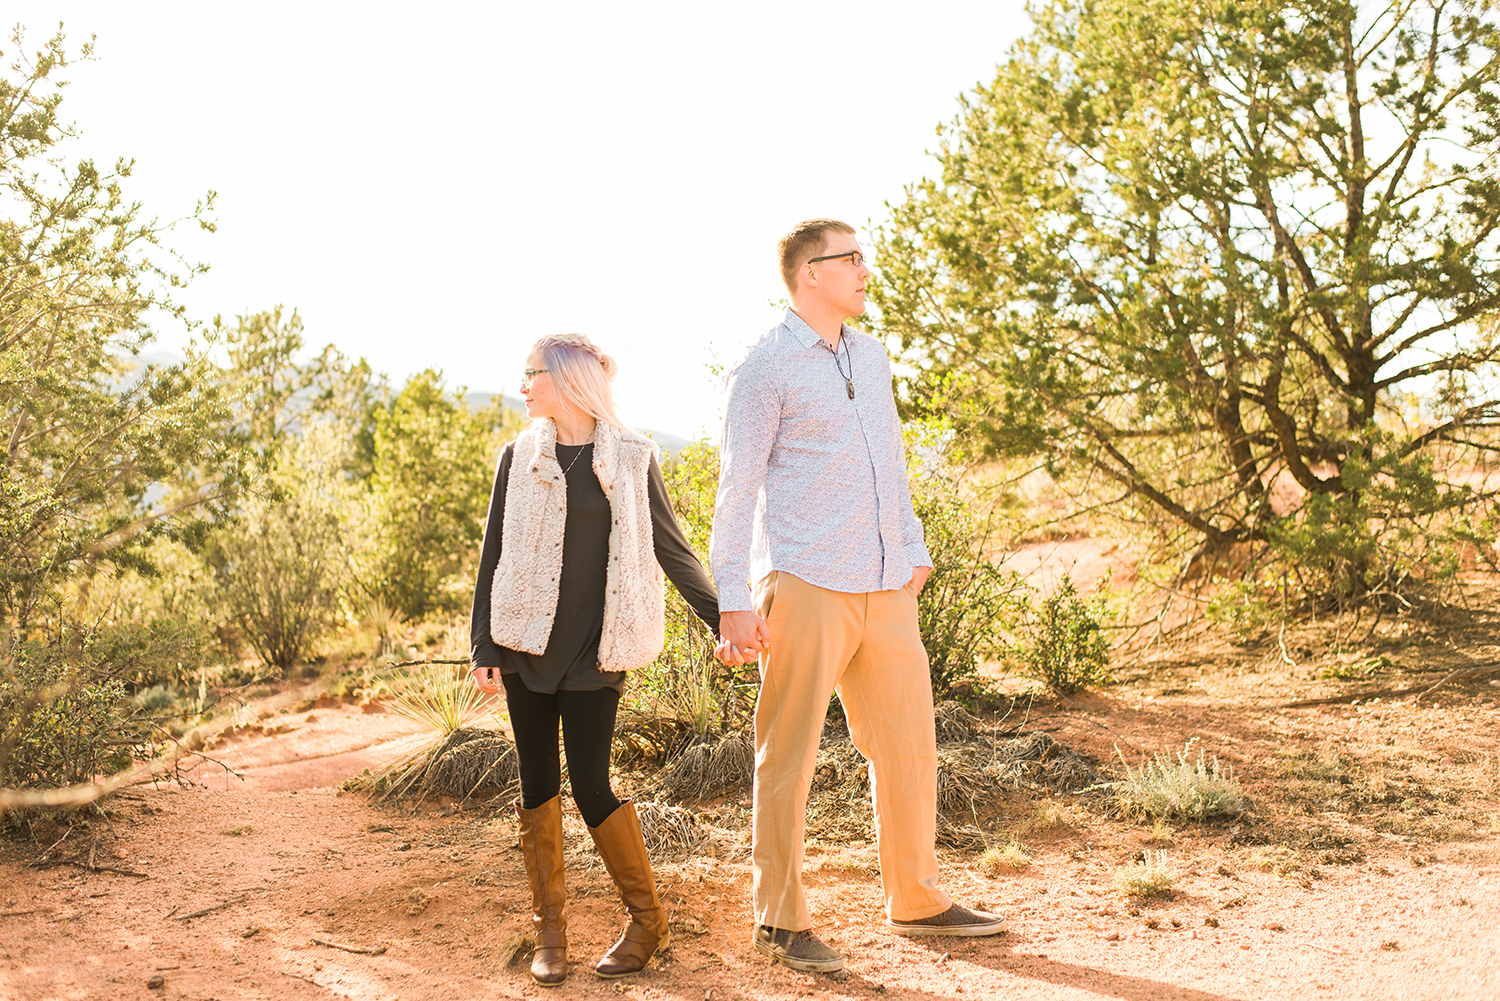 garden-of-the-gods-engagement-session-colorado-springs-wedding-photographer-k-m-2.jpg